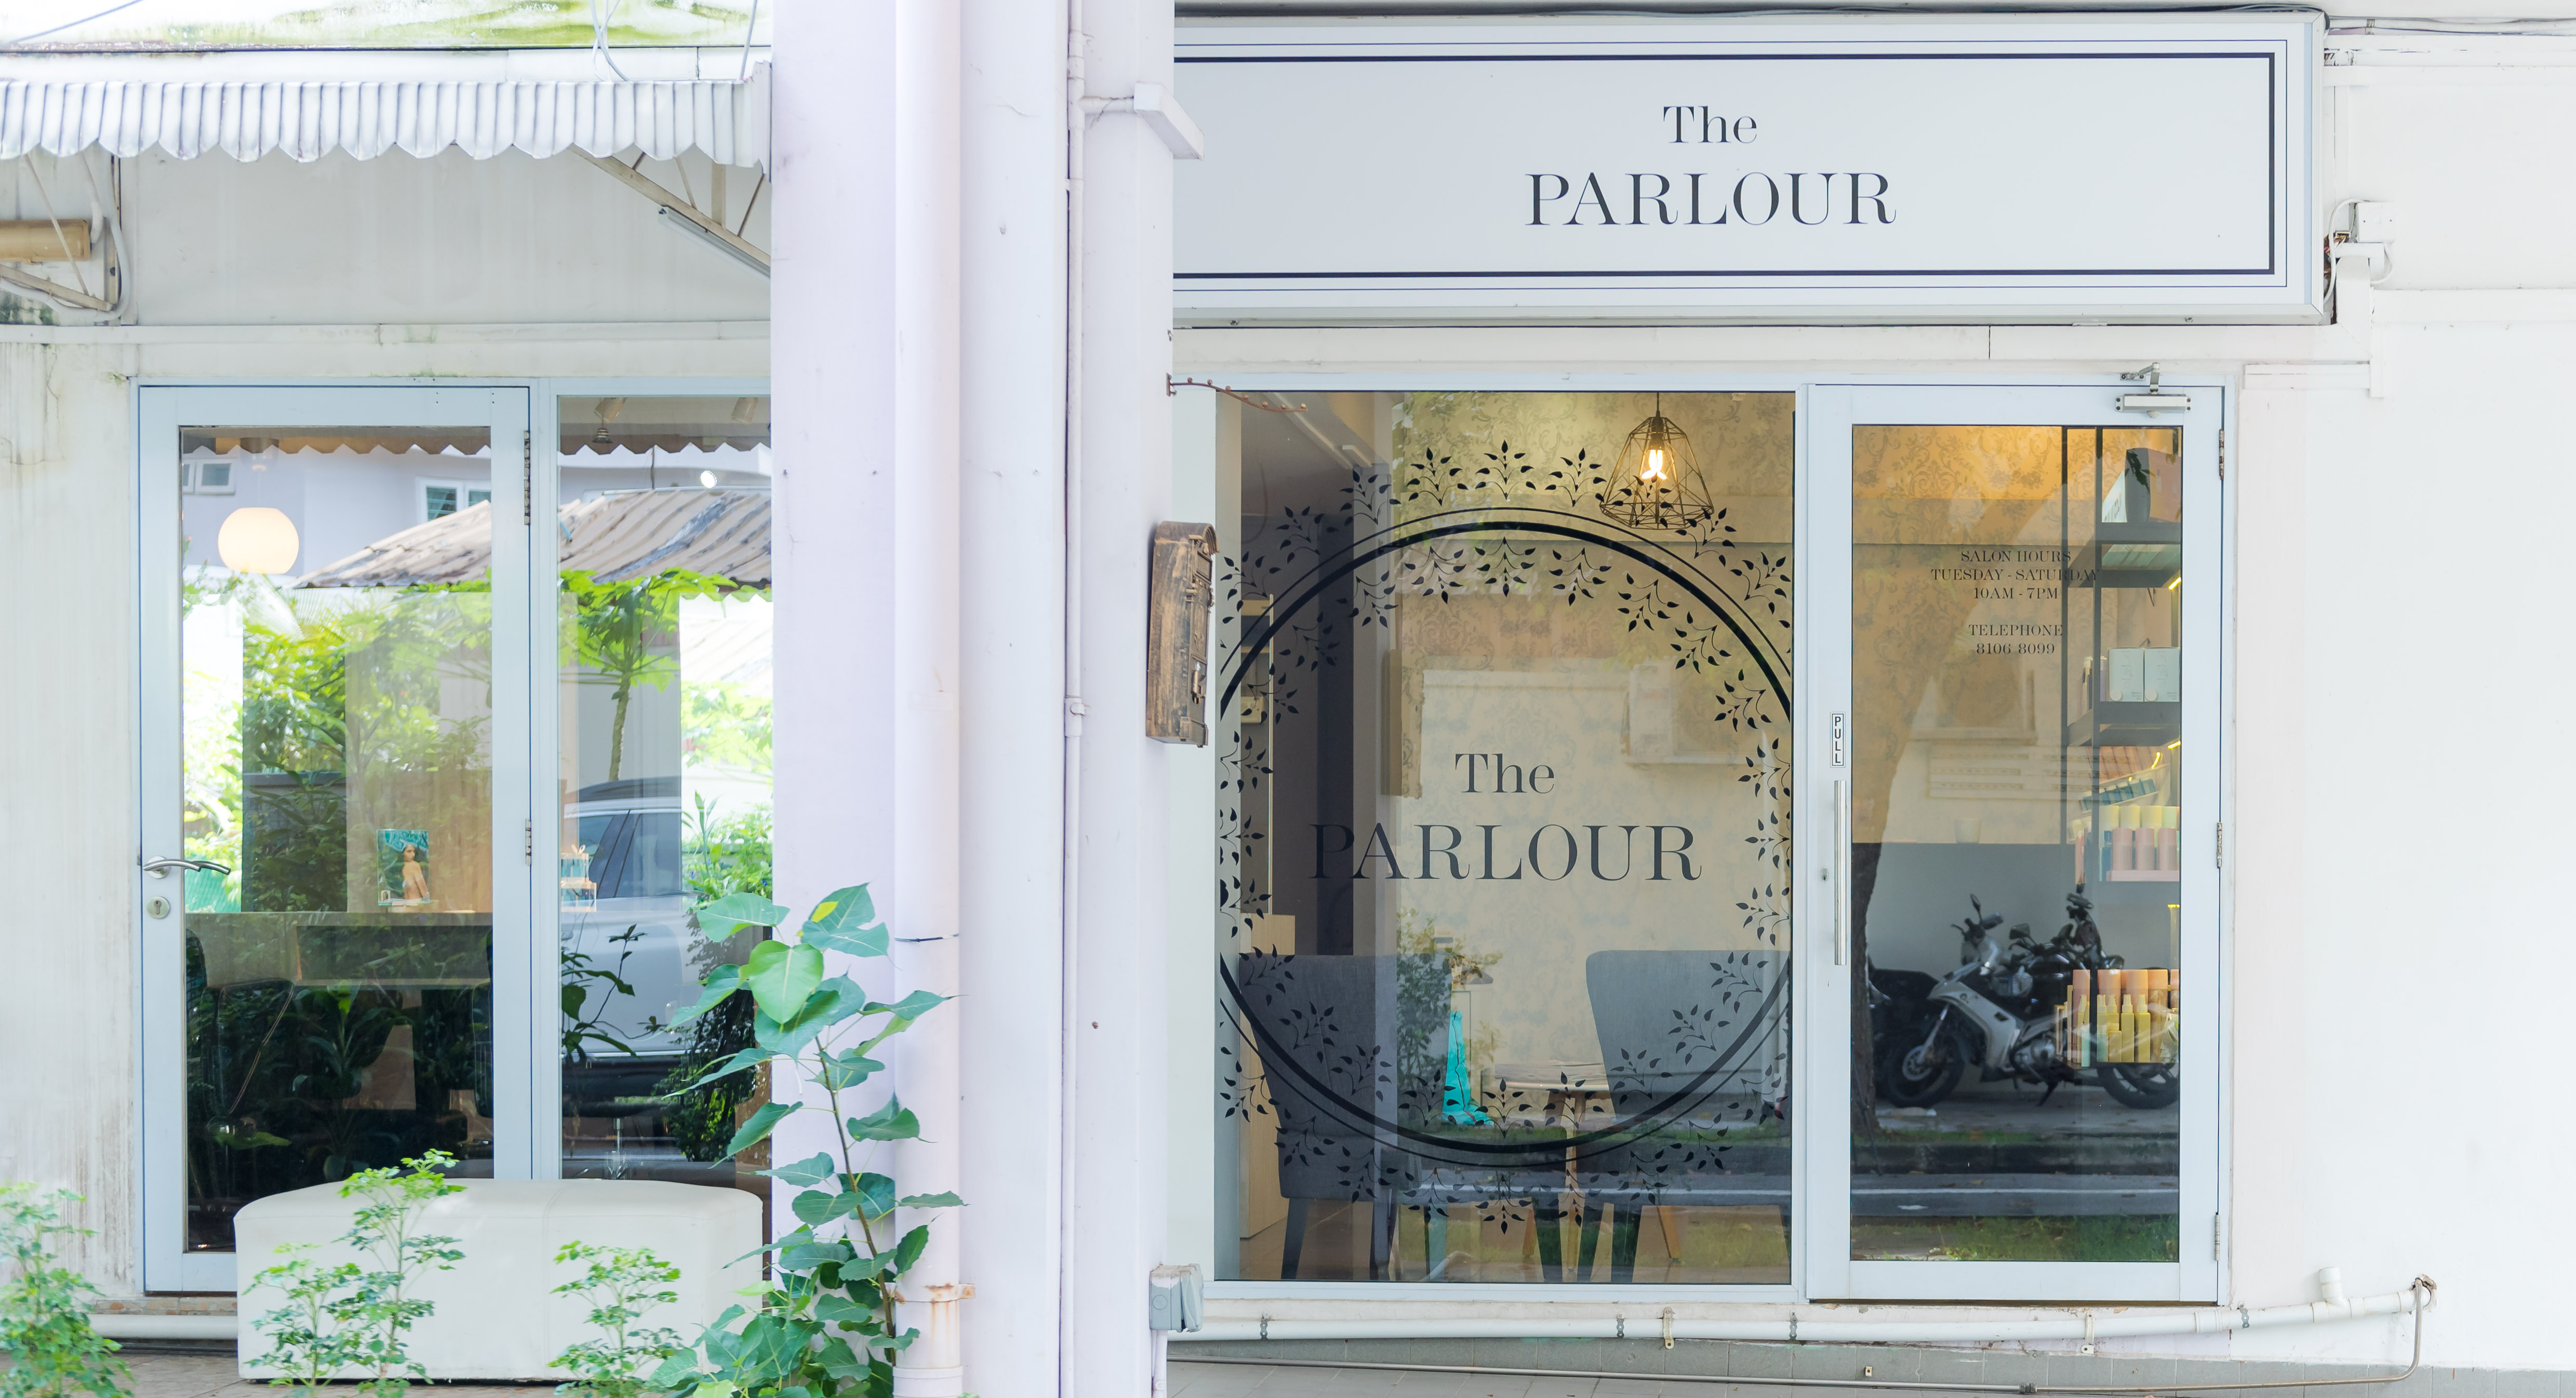 Howdy. We're The Parlour Singapore